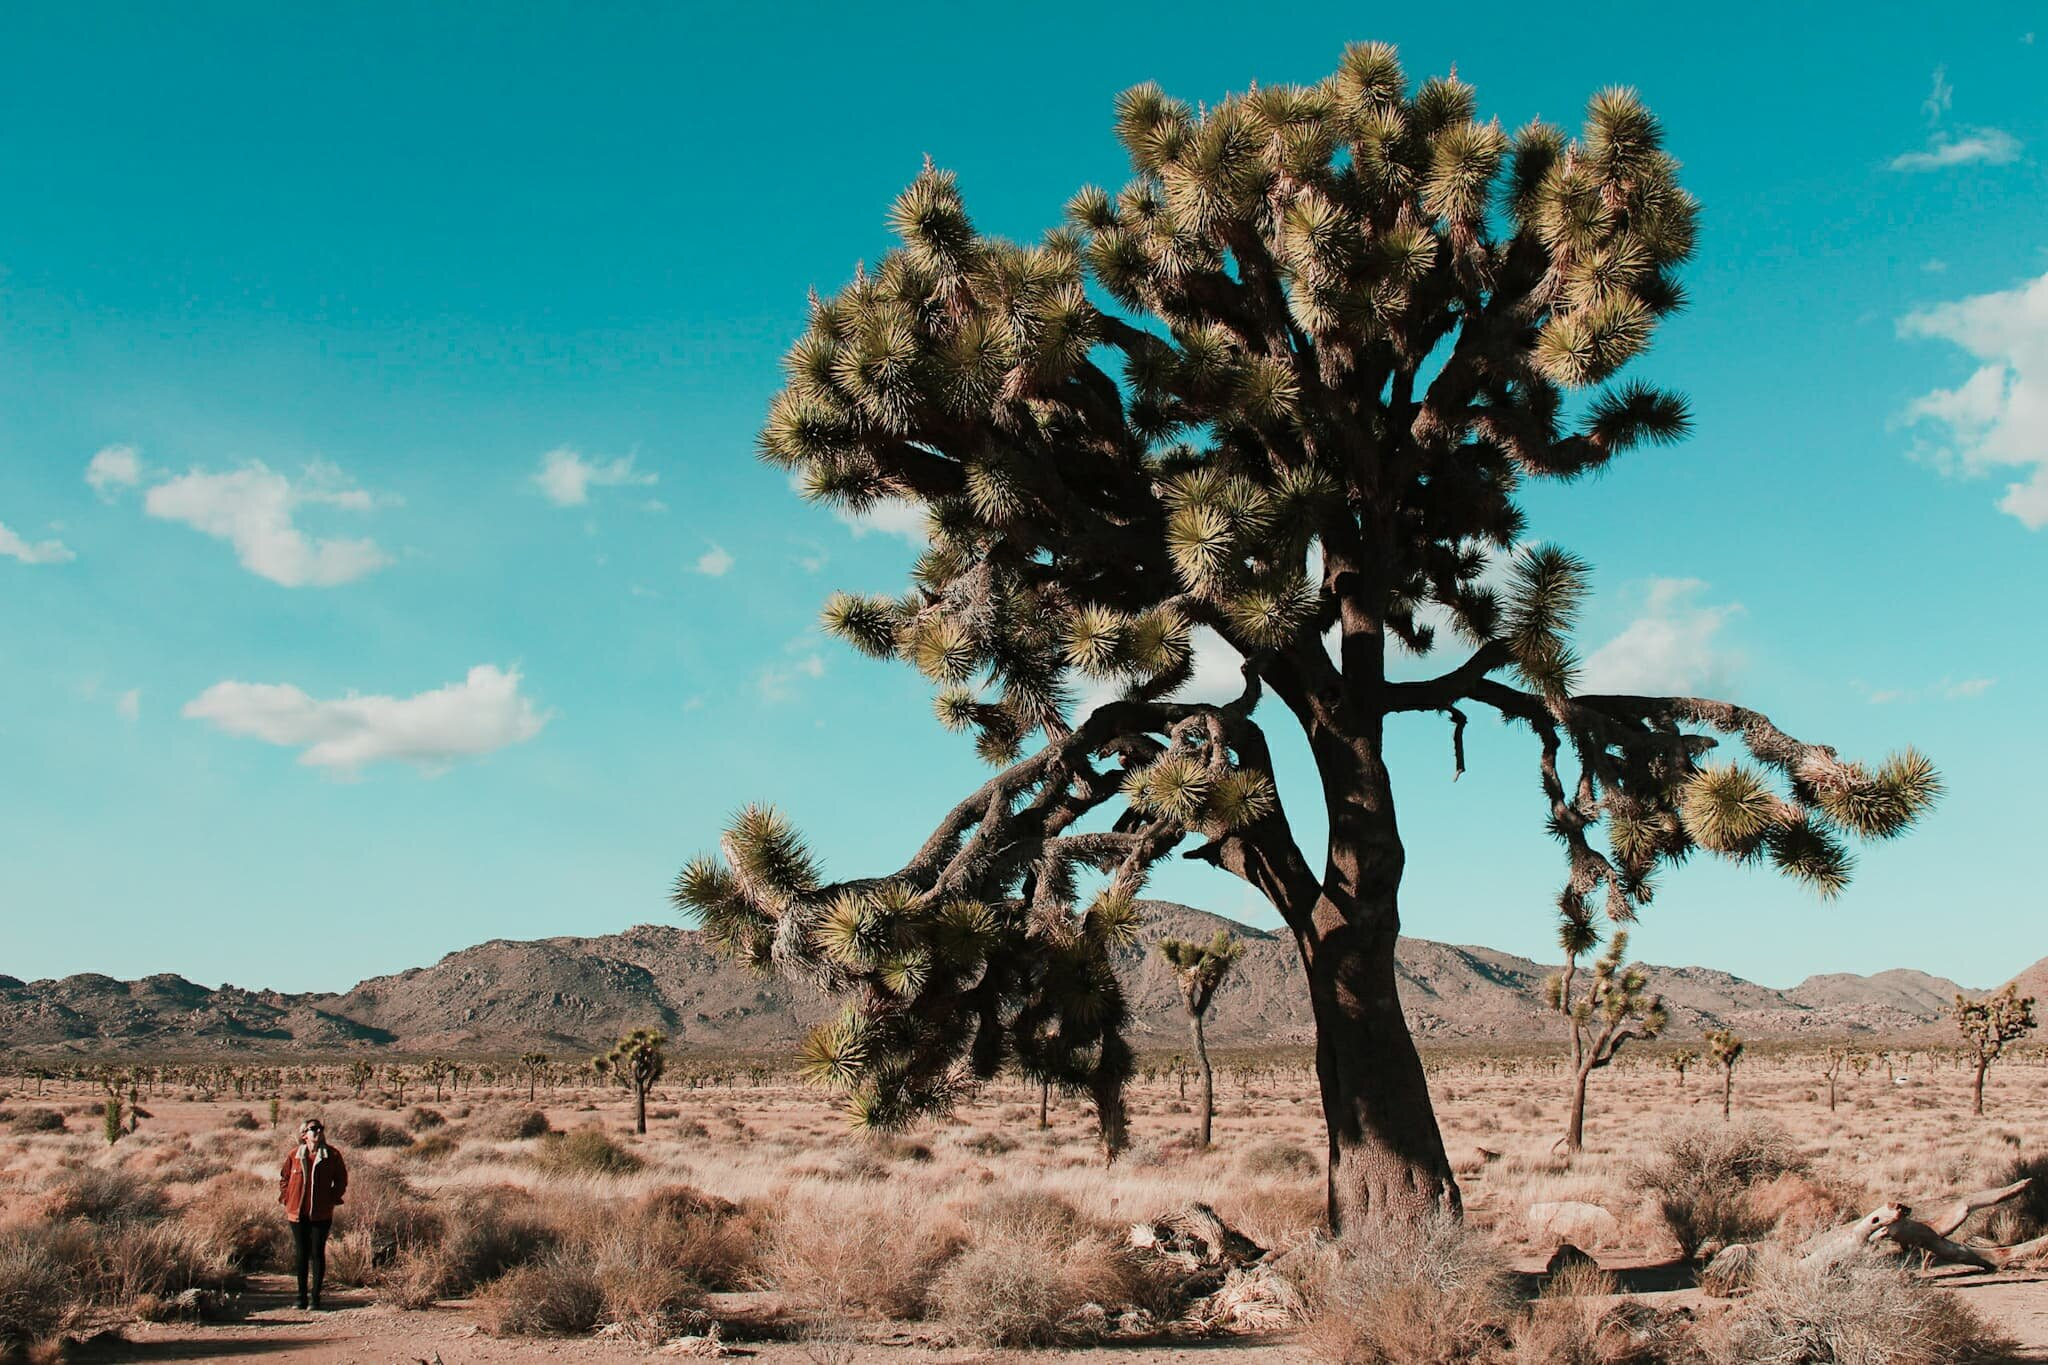 Joshua Tree National Park - This Joshua Tree National Park road trip will show you how to see the park's highlight's in one day.